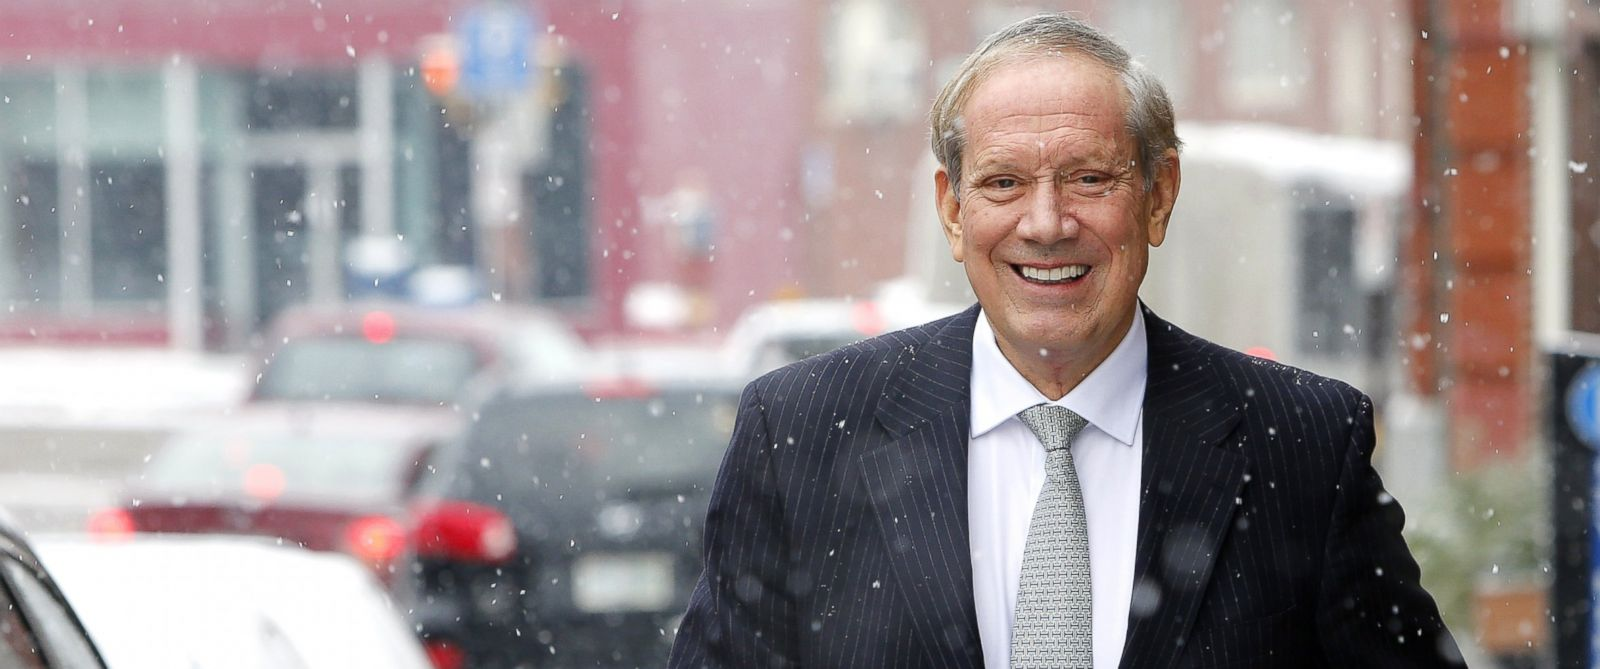 PHOTO: Former New York Republican Gov. George Pataki walks through the snow Monday, Jan. 12, 2015, in Concord, N.H.